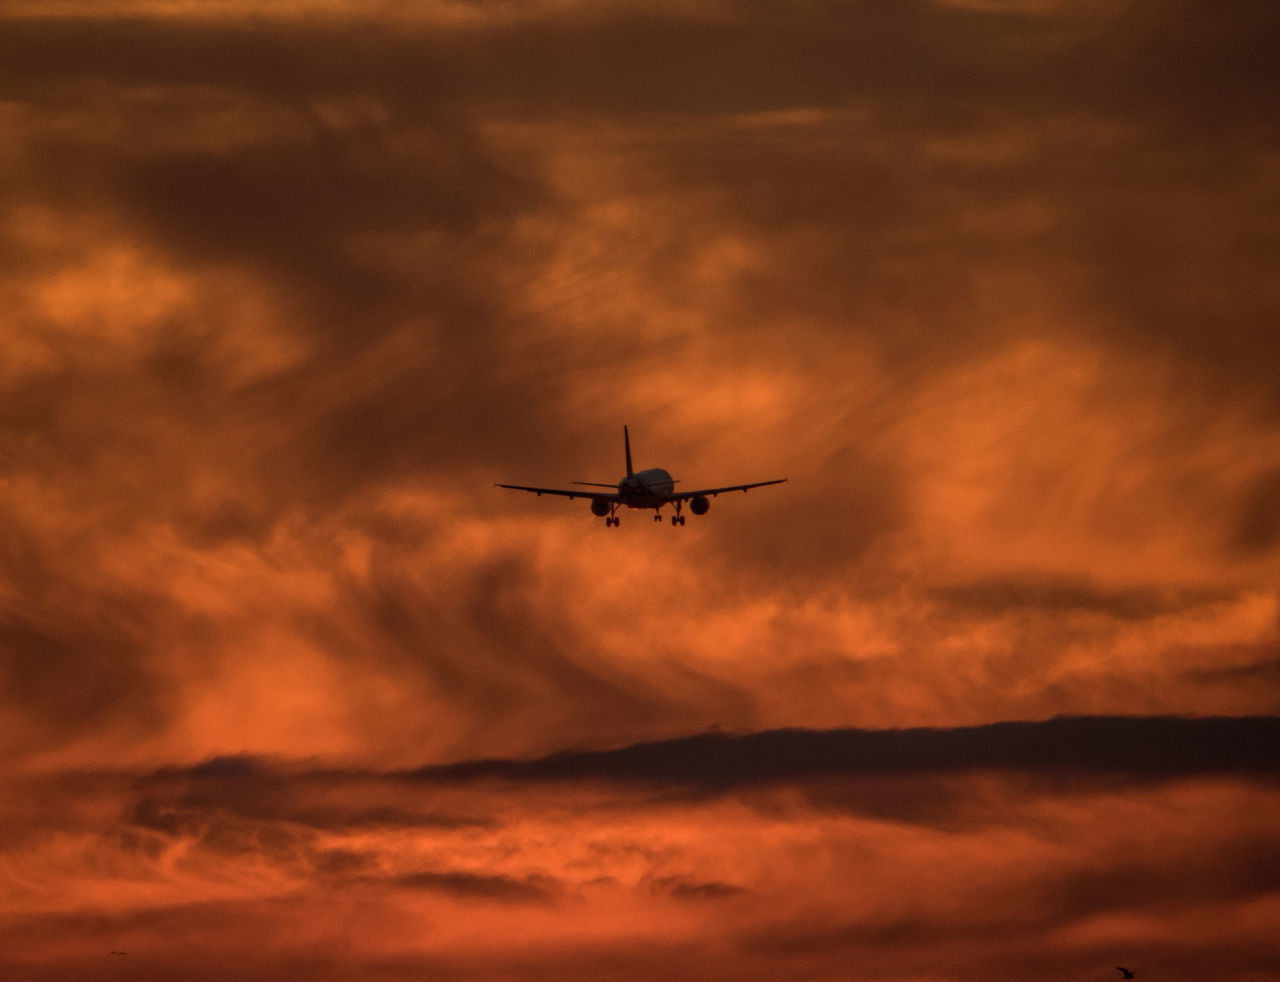 Beautiful stock photos of airplane, sunset, transportation, flying, silhouette